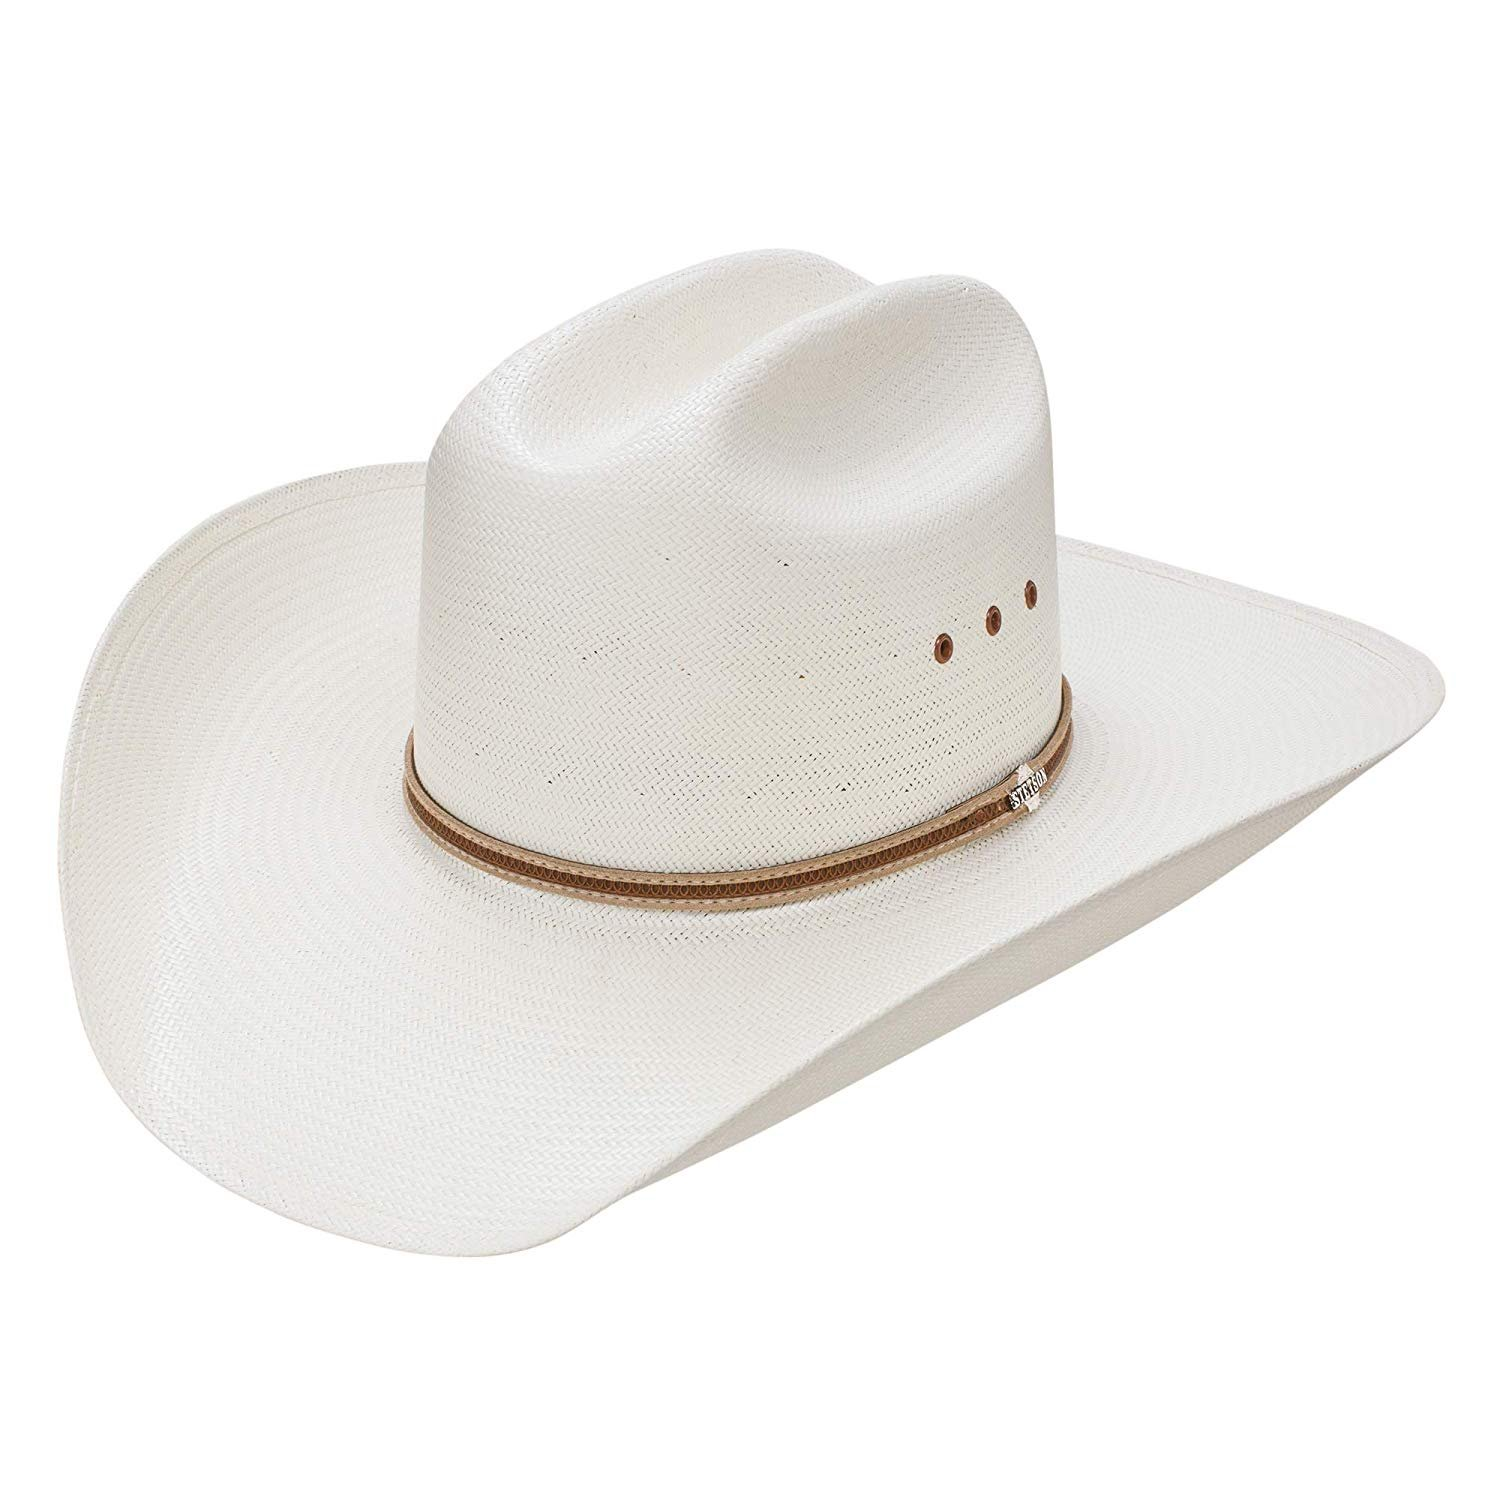 sold worldwide superior quality picked up Details about Stetson Bisbee 8X Straw Natural Cowboy Hat 7 3/8